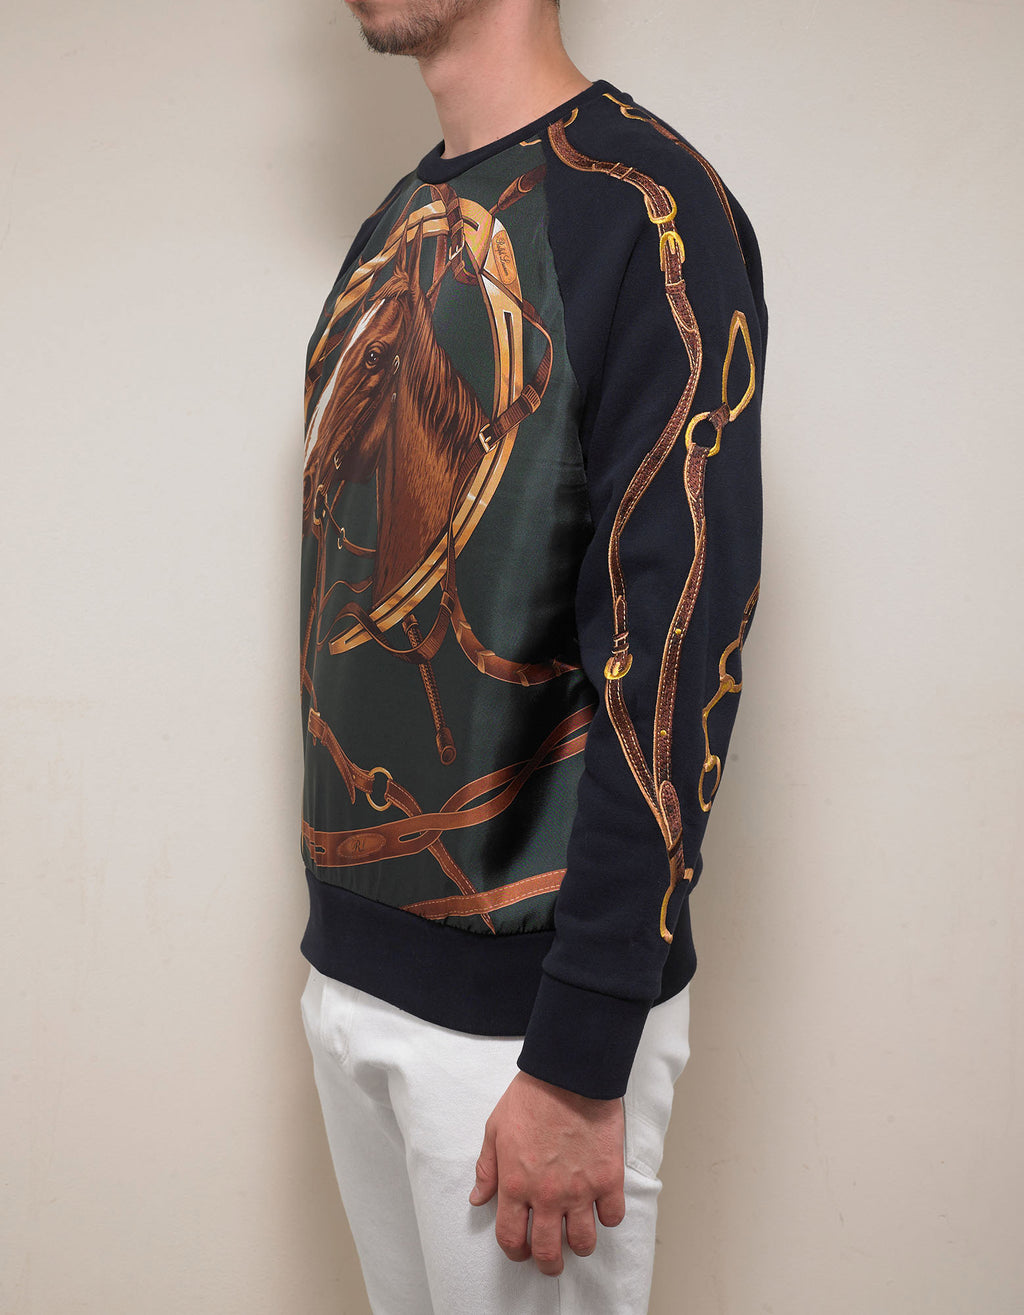 Navy Blue Silk Overlay Horse Graphic Sweatshirt